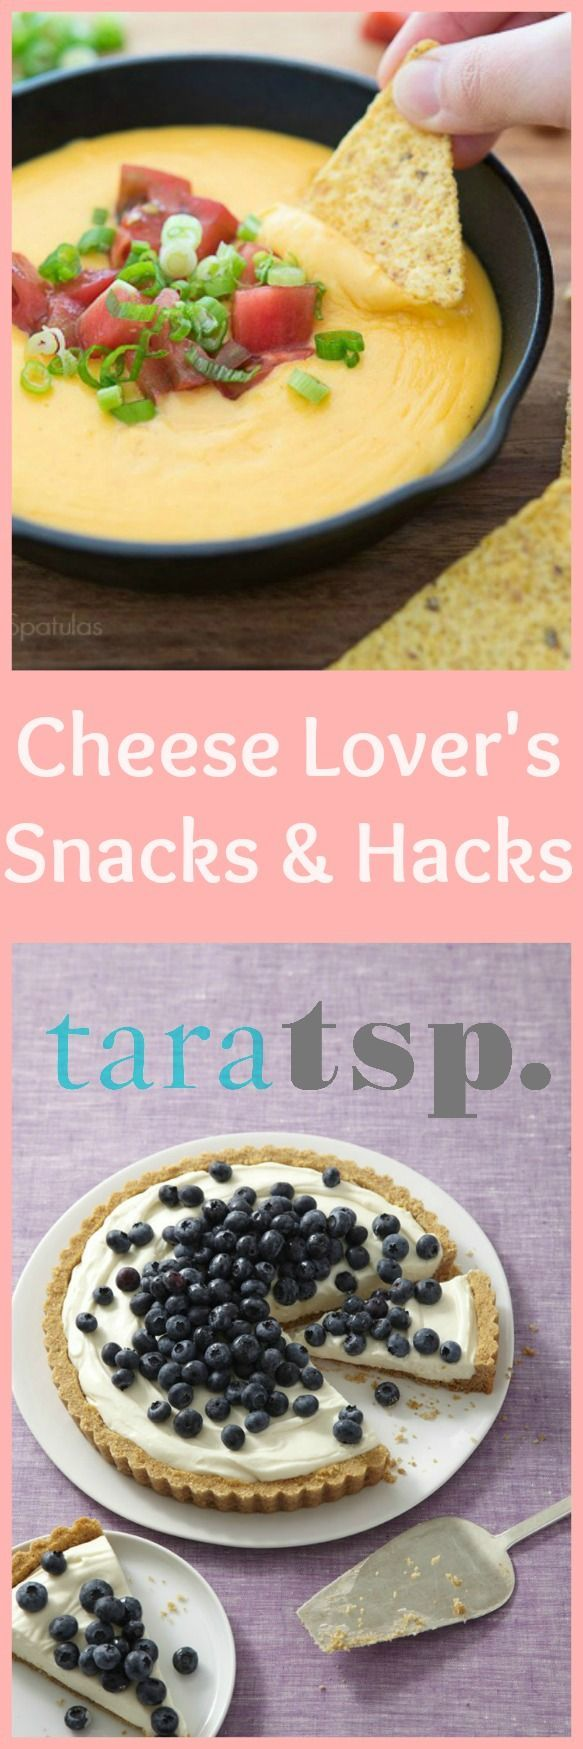 Let's celebrate one of my favorite foods with these cheese lover's snacks and hacks. Nothing says delicious, quite like melted cheese!